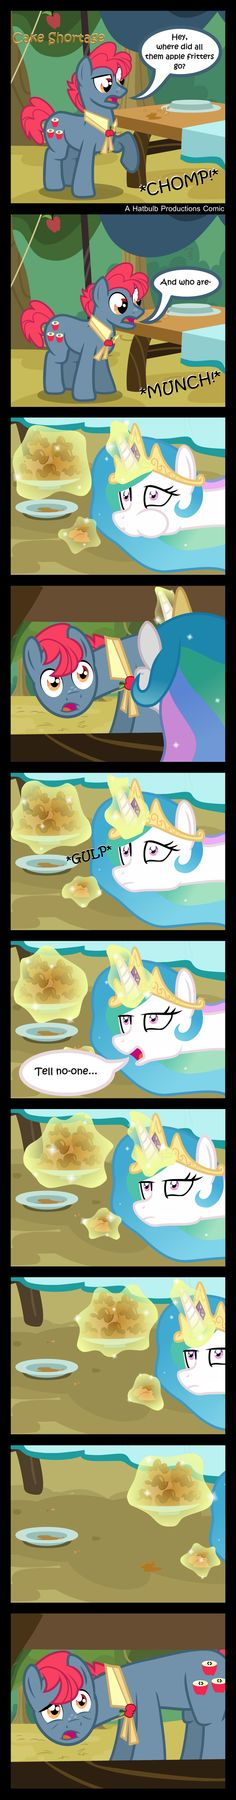 COMIC: Cake Shortage by *HatBulbProductions on deviantART